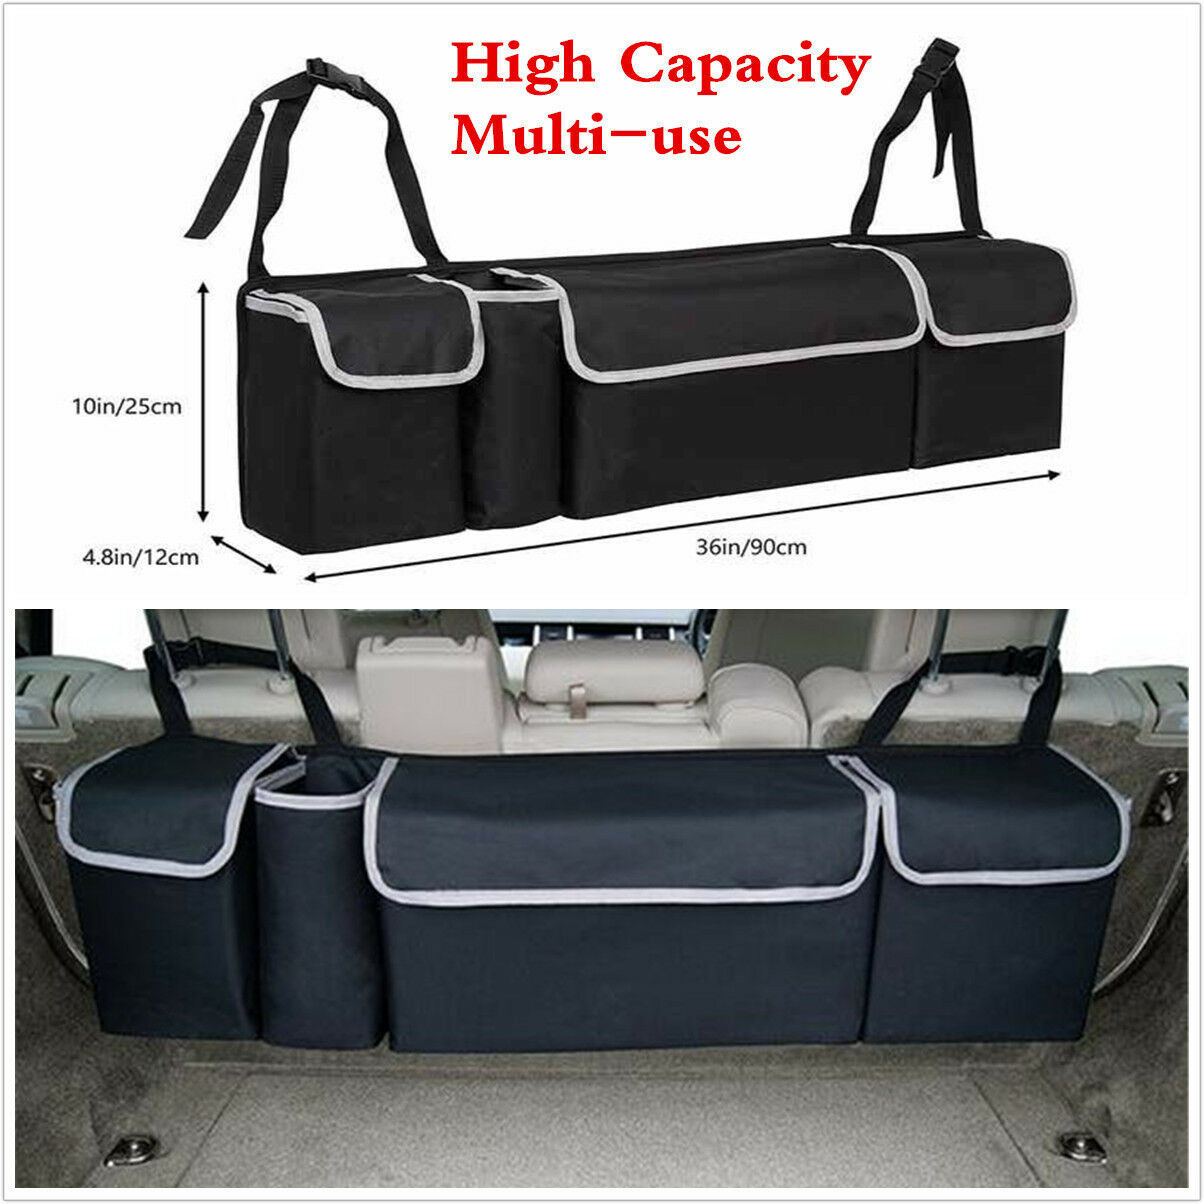 Car Parts - Black High Capacity Multi-use Car Seat Back Organizers Bag Interior Accessories